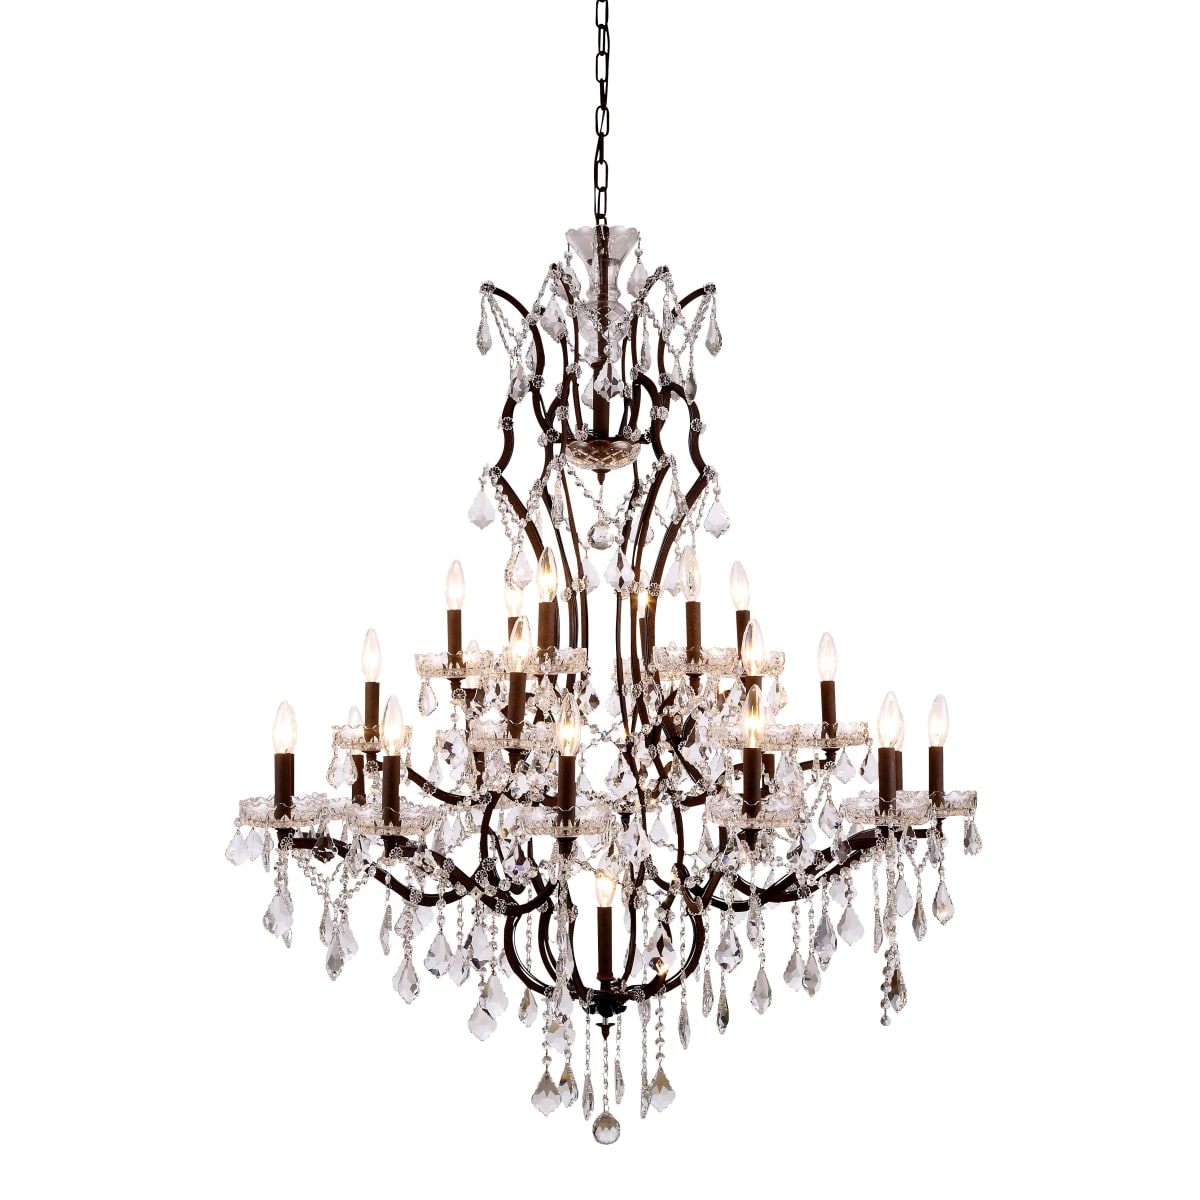 Elegant Lighting 1138g41